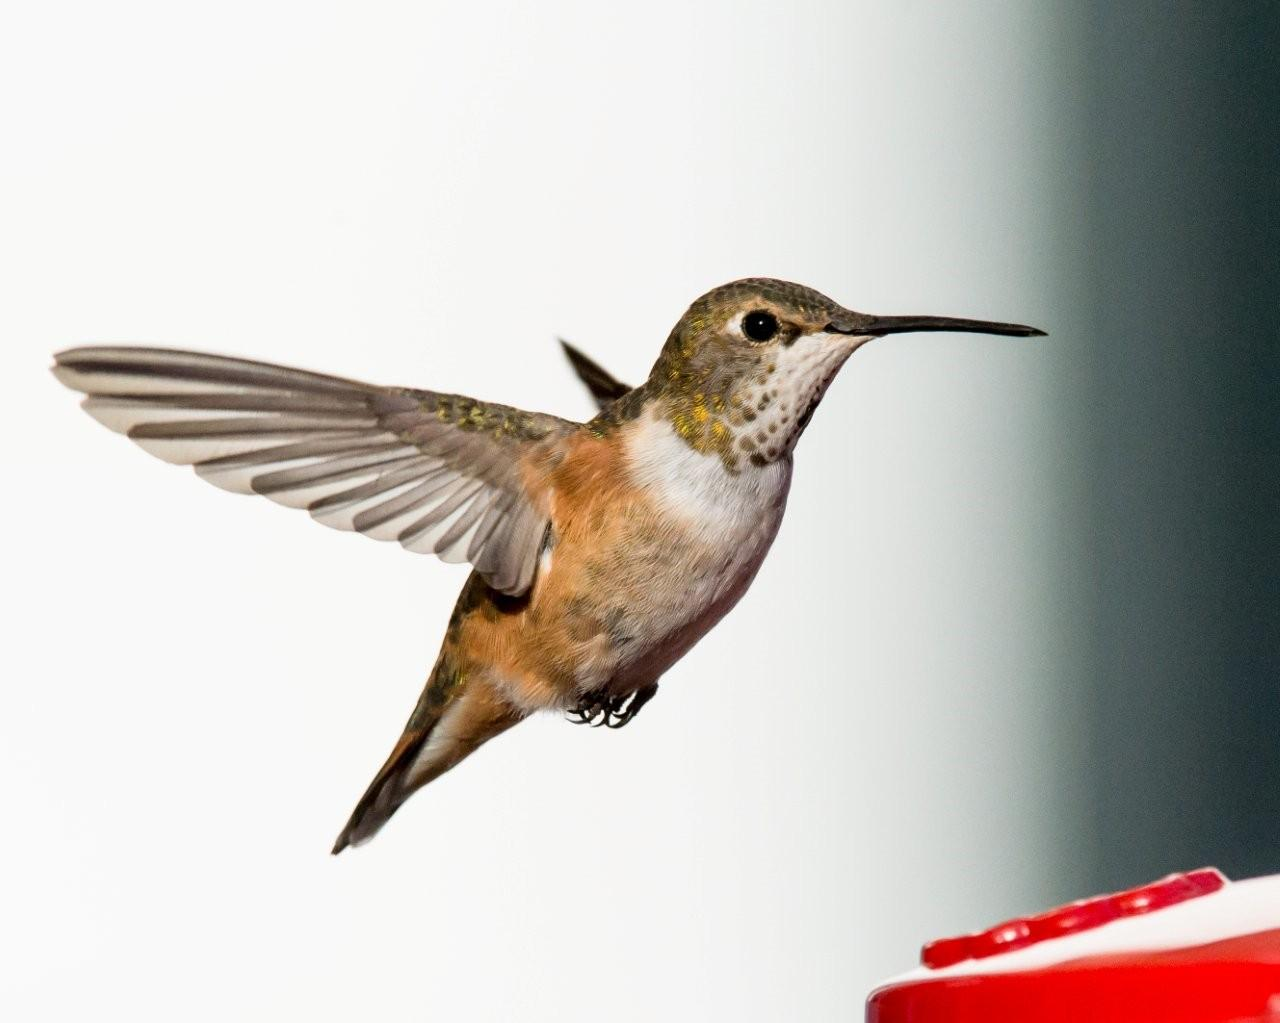 My second Rufous Hummingbird, out of 3 for the day, has been coming to a feeder at a home in Wilmington.